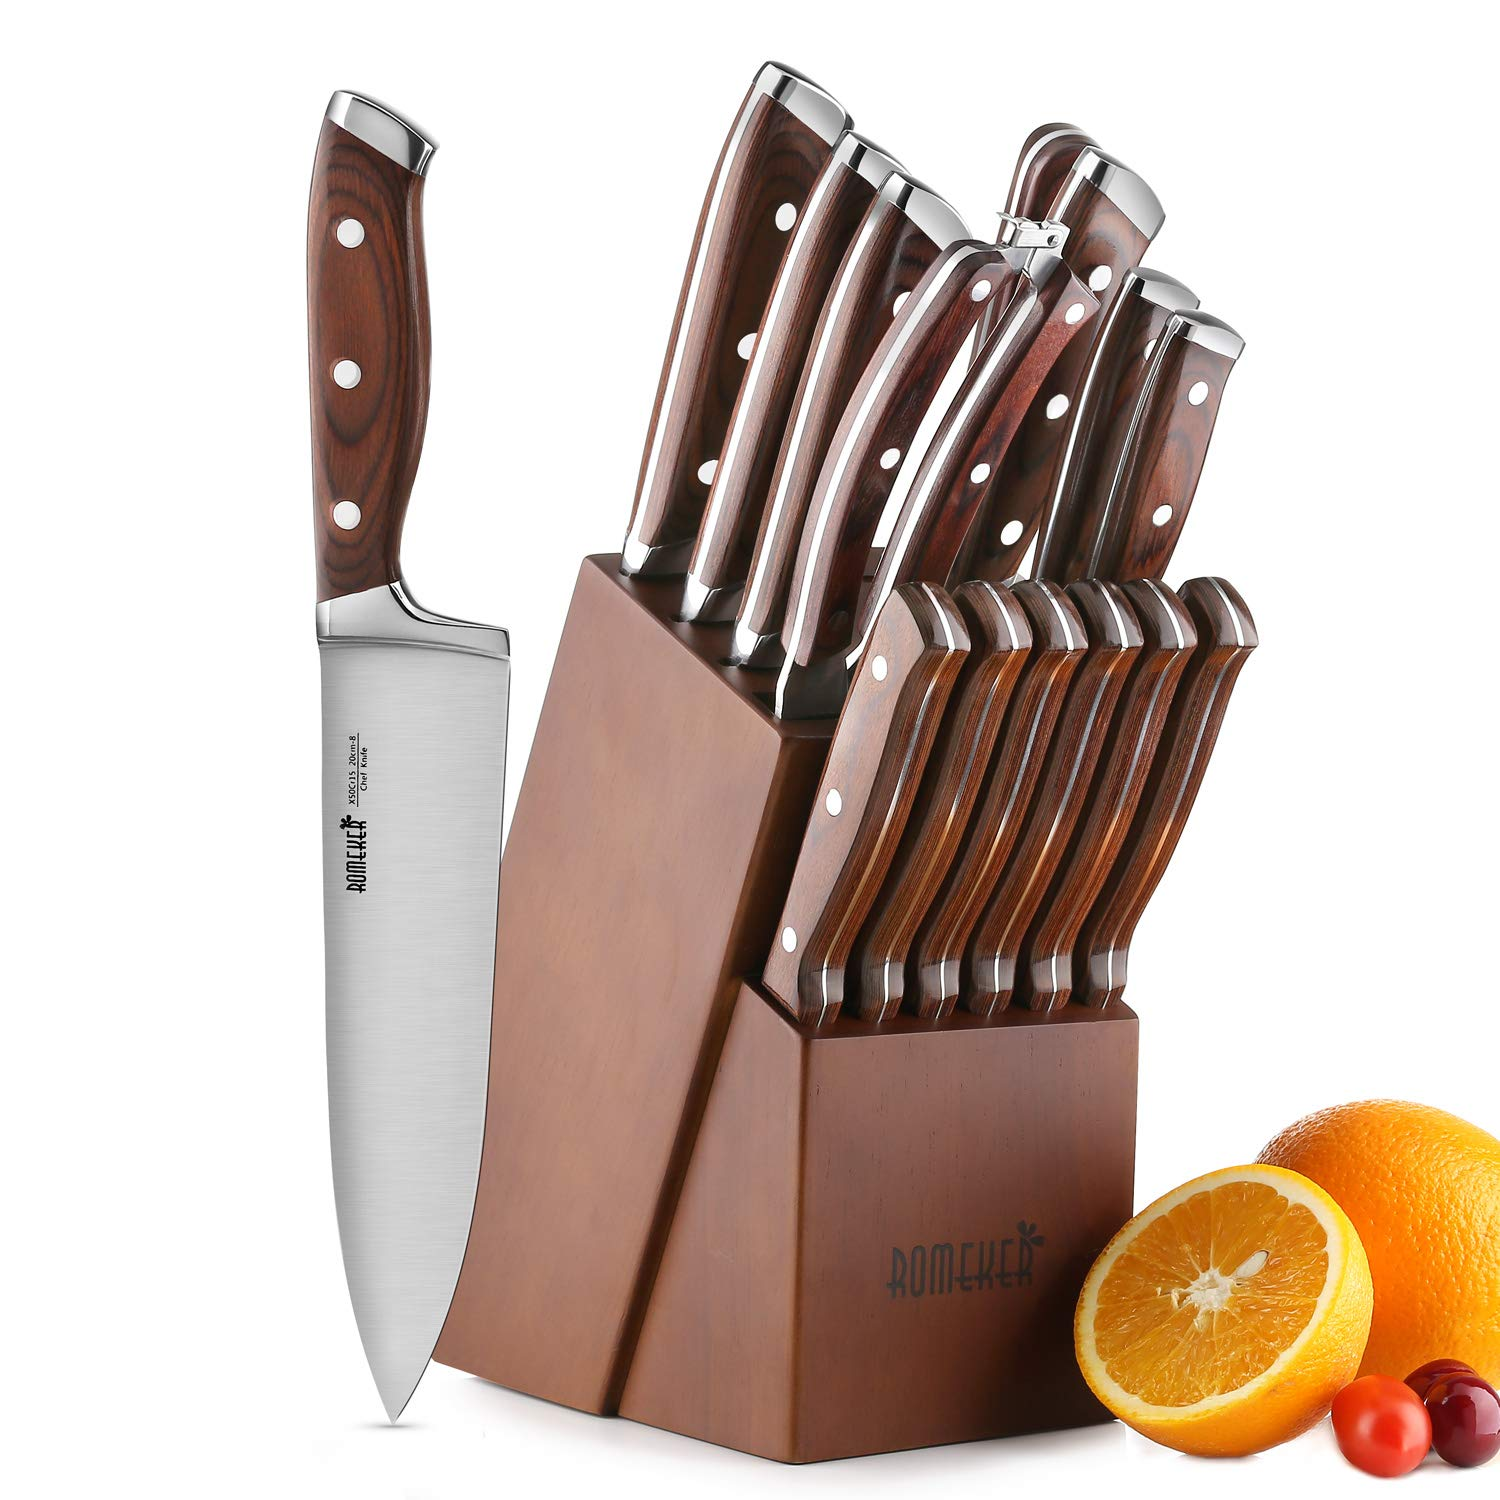 Knife Set,15-Piece Kitchen Knife Set with Block Wooden,Chef Knife Set with Sharpener,Germany High Carbon Stainless Steel Knife Block Set,Boxed Knife Sets,ROMEKER by ROMEKER